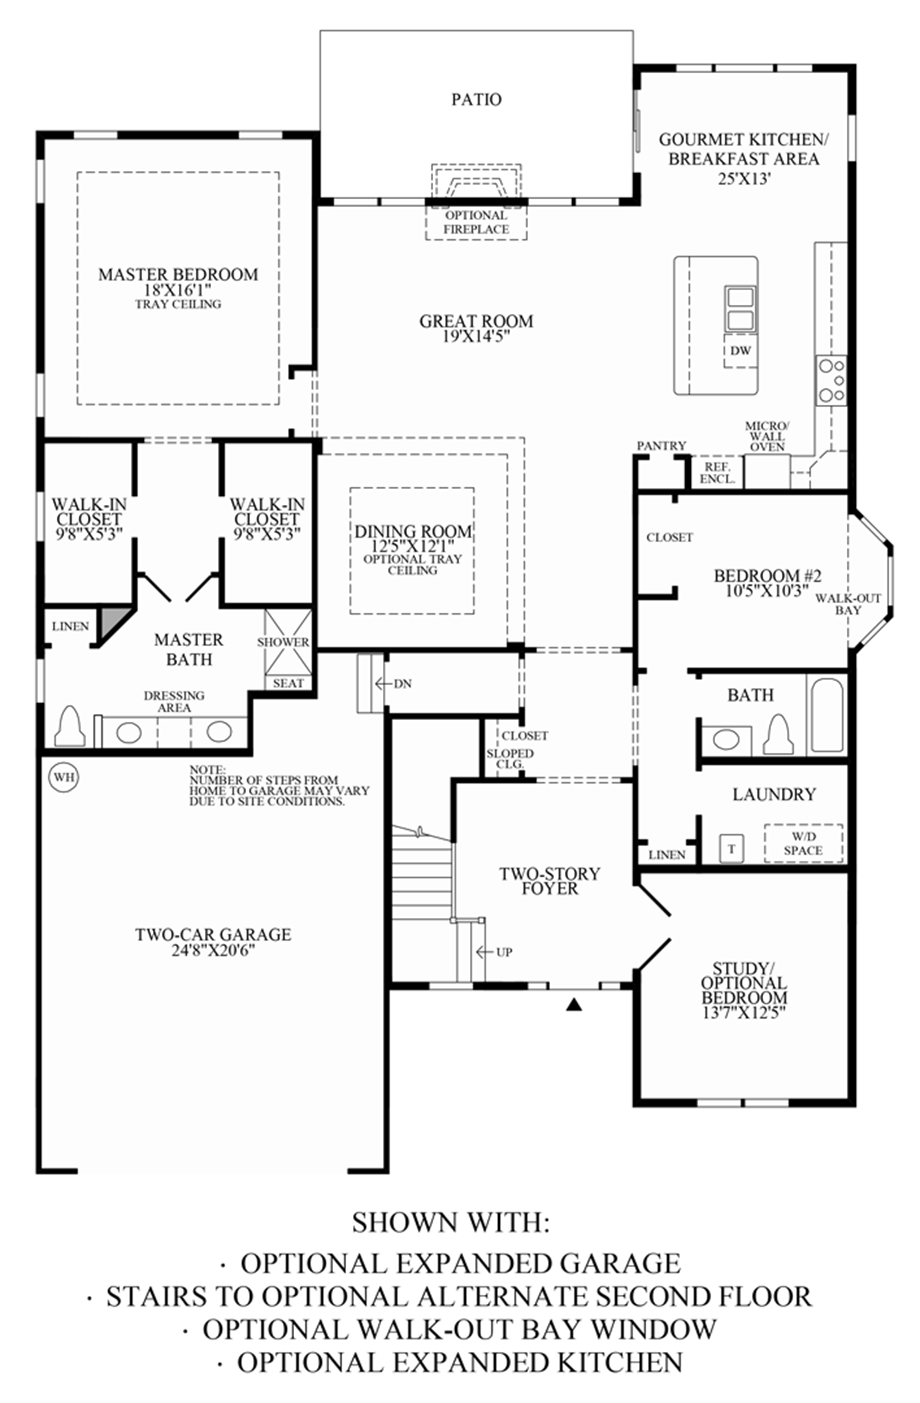 Optional Expanded Garage, Walk-Out Bay Window, Expanded Kitchen & Stairs to Alternate 2nd Floor Floor Plan